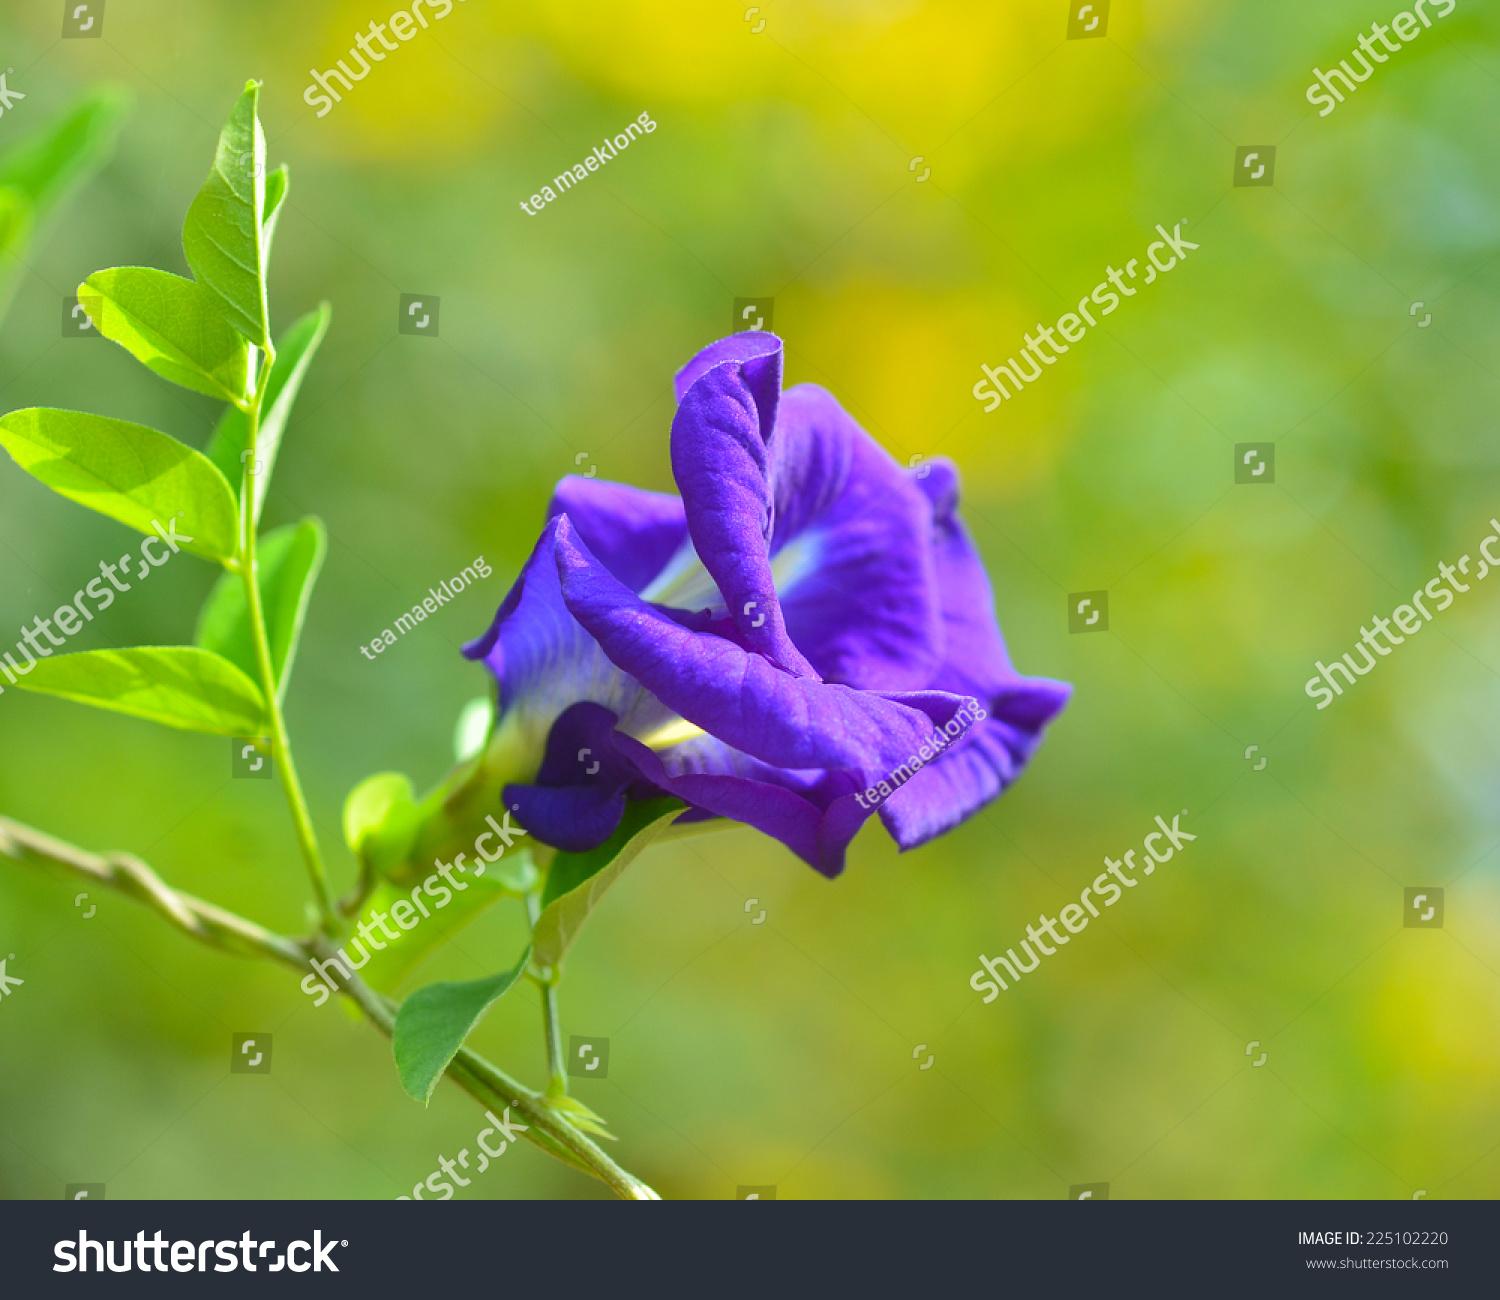 Blue pea blue vine butterfly pea stock photo edit now shutterstock blue pea blue vine butterfly pea pigeon wings flower medicinal herbs to treat izmirmasajfo